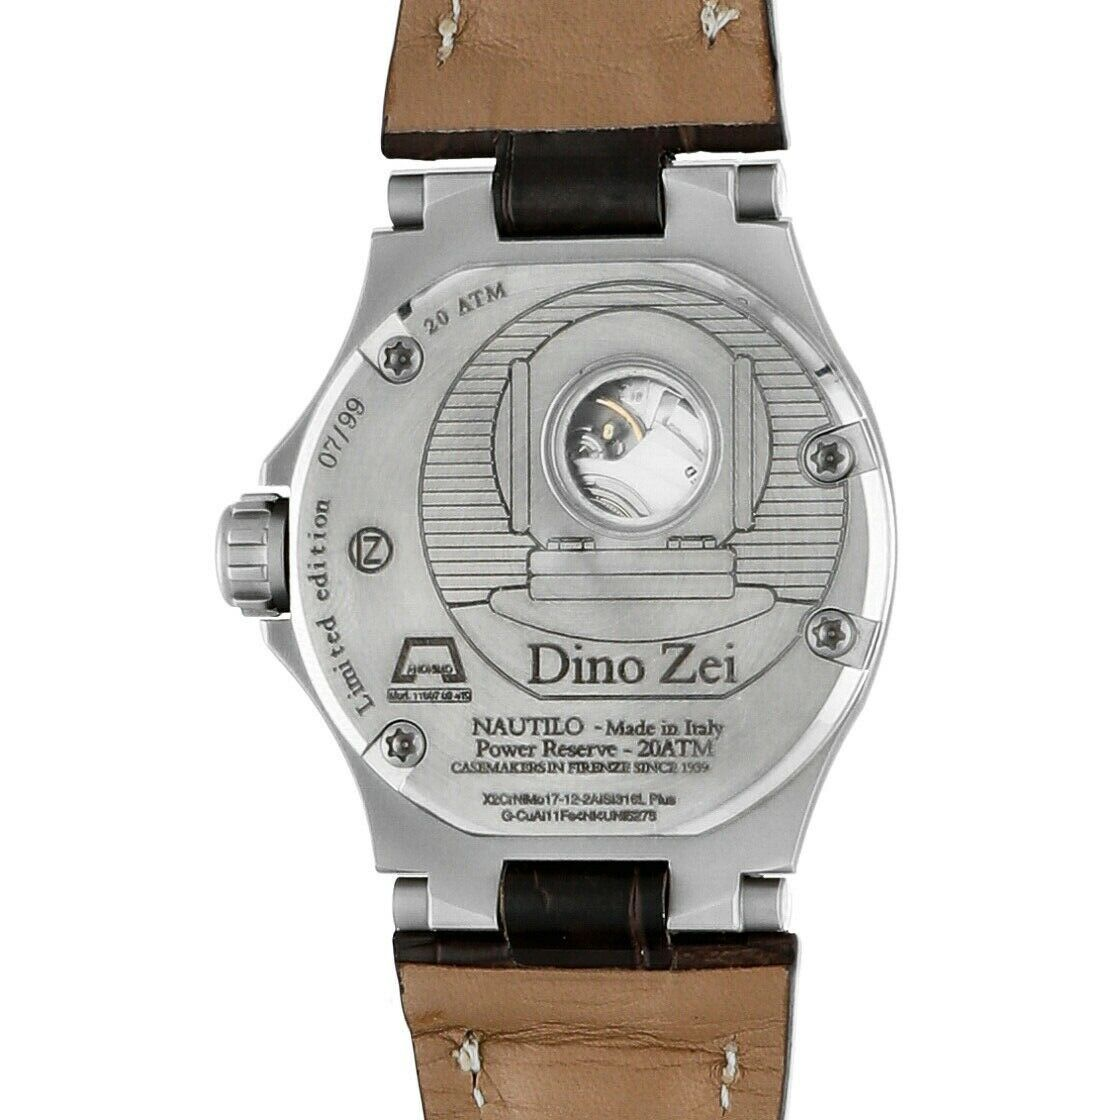 Dino Zei Nautilo Limited Edition 11007 Steel Leather Automatic Mens Watch 124232242502 9